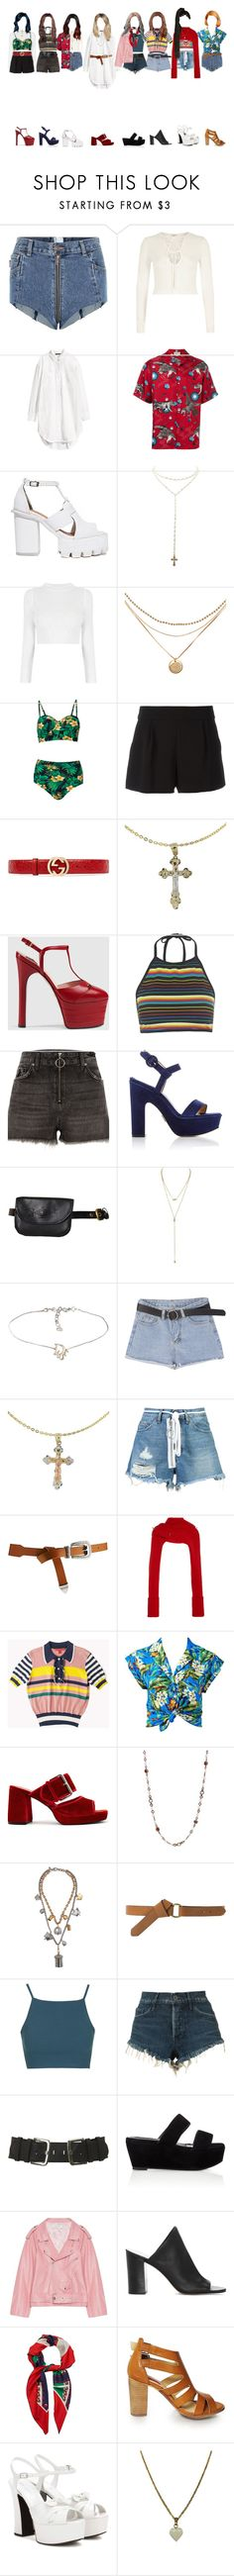 """E X O _ Ko Ko Bop ( female vers. )"" by xxzodiacentertainmentxx ❤ liked on Polyvore featuring Vetements, River Island, H&M, Gucci, Charlotte Russe, Boutique Moschino, Motel, Paul Andrew, Topshop and Cross"